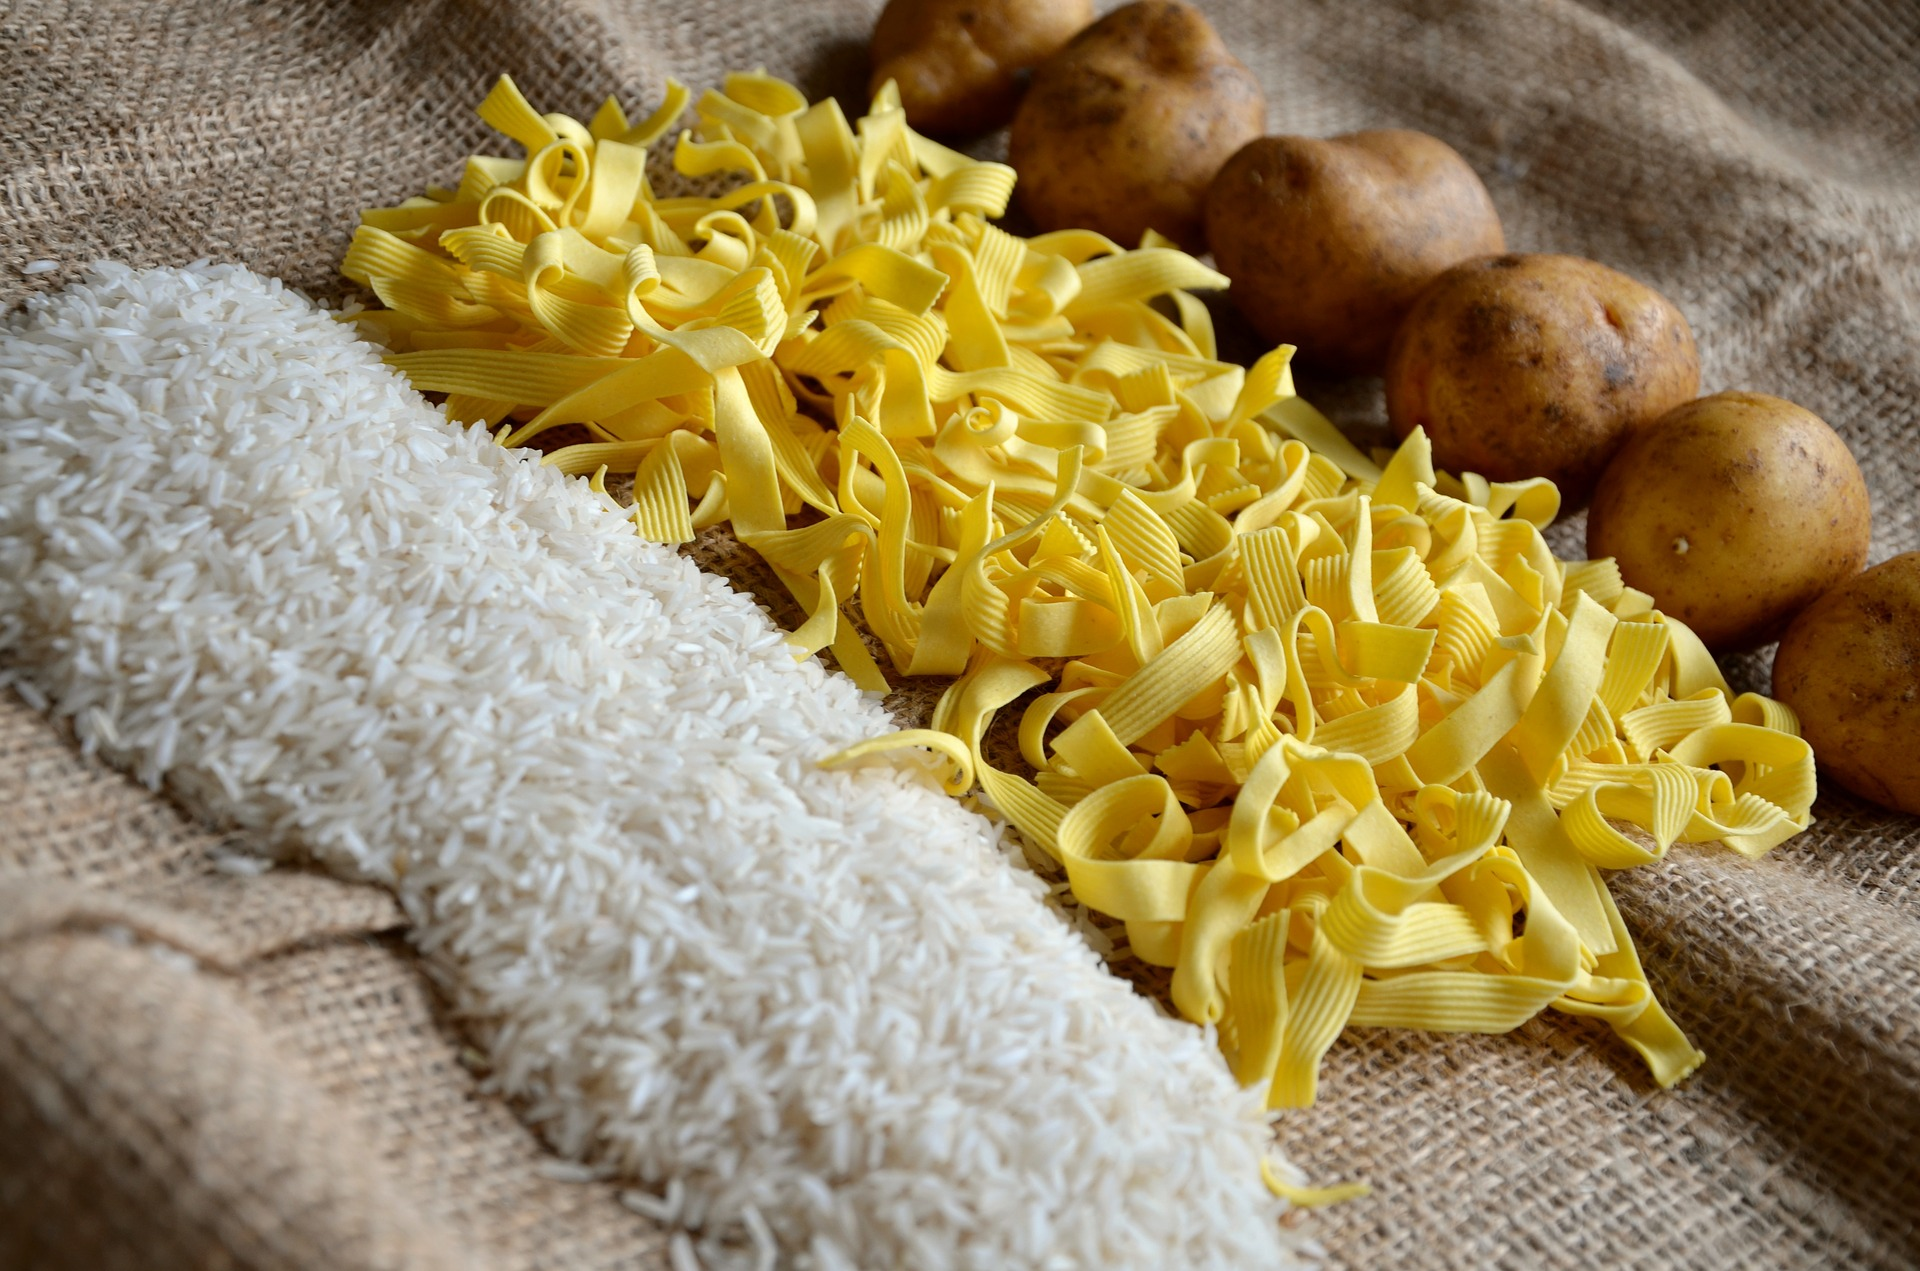 Carb Confusion: Part 2 - Measuring and Comparing Carbohydrate in Pet Foods